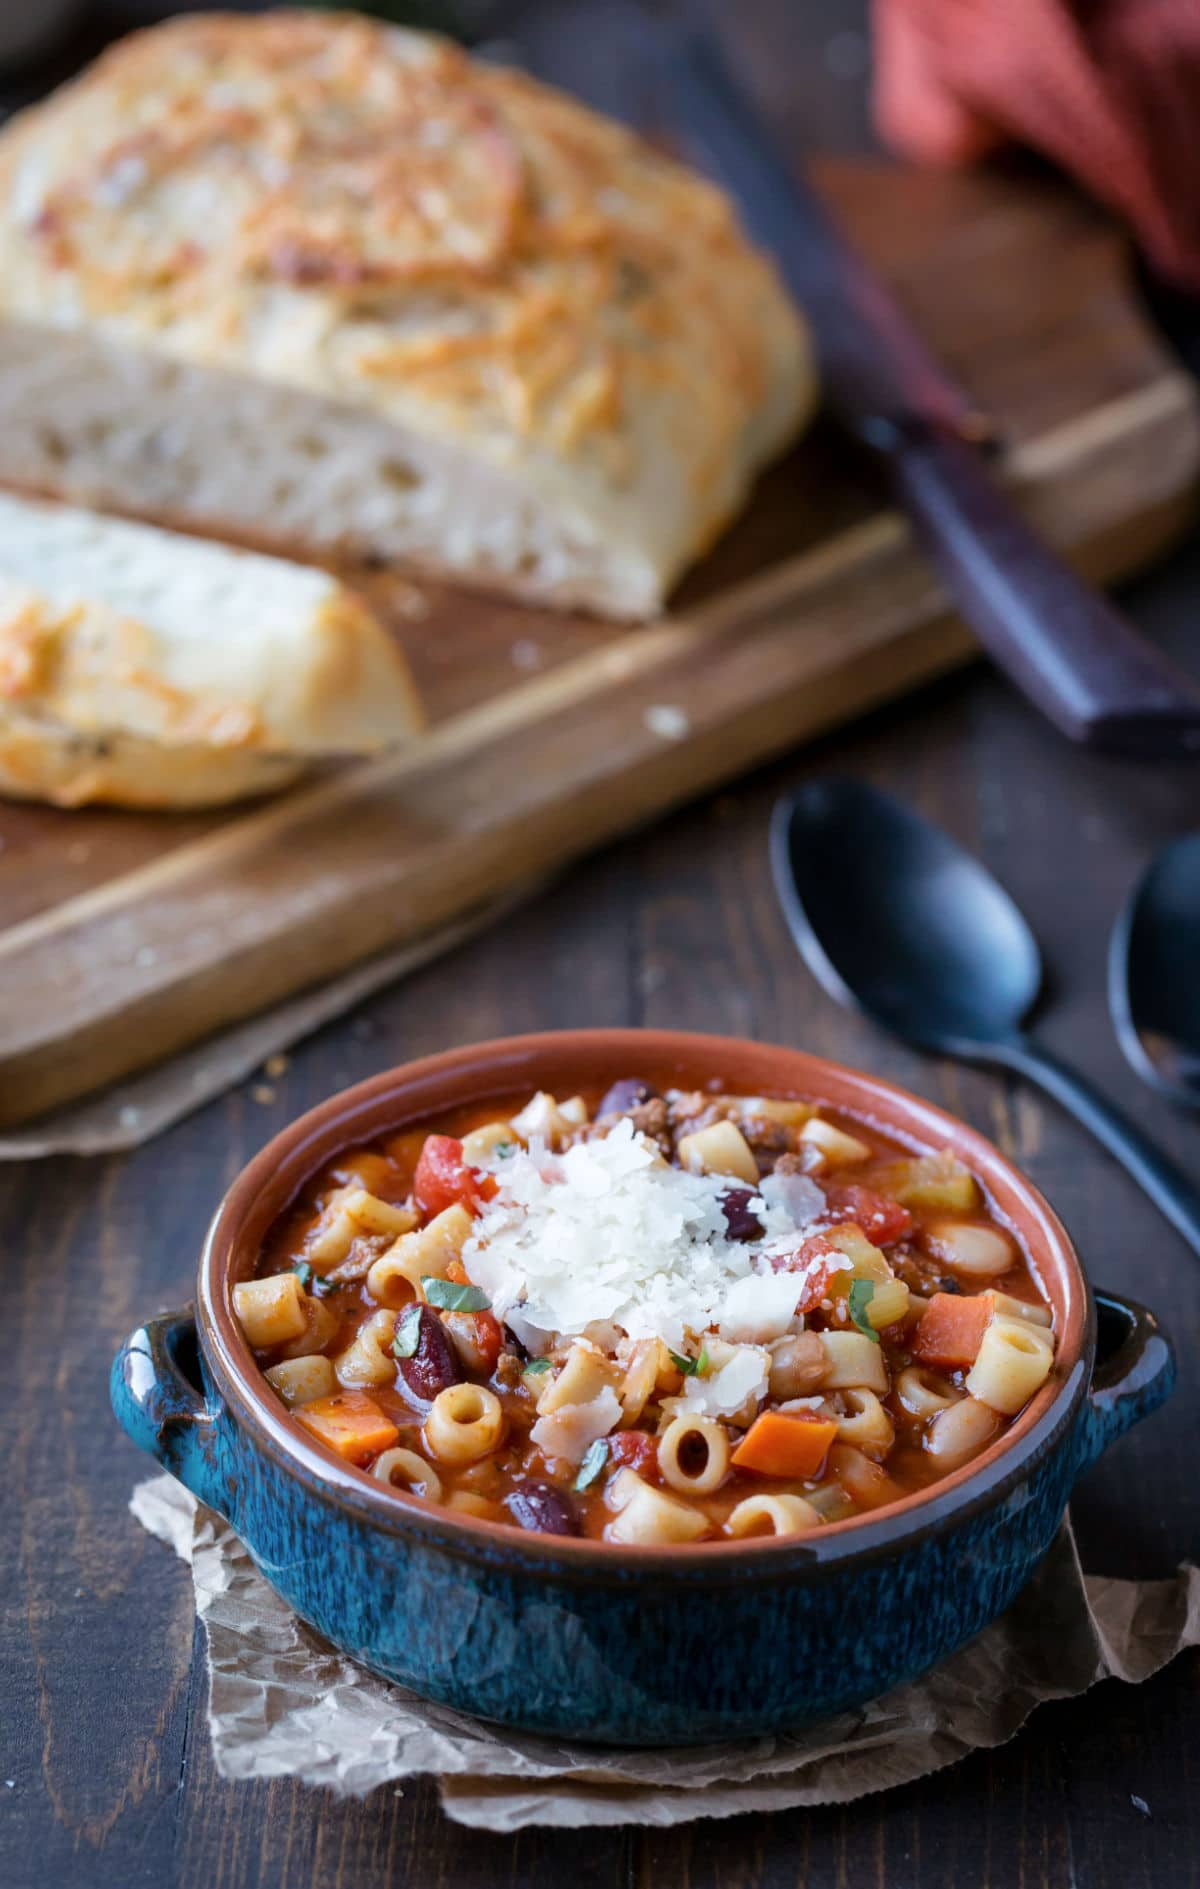 Bowl of pasta e fagioli soup next to a loaf of sliced bread